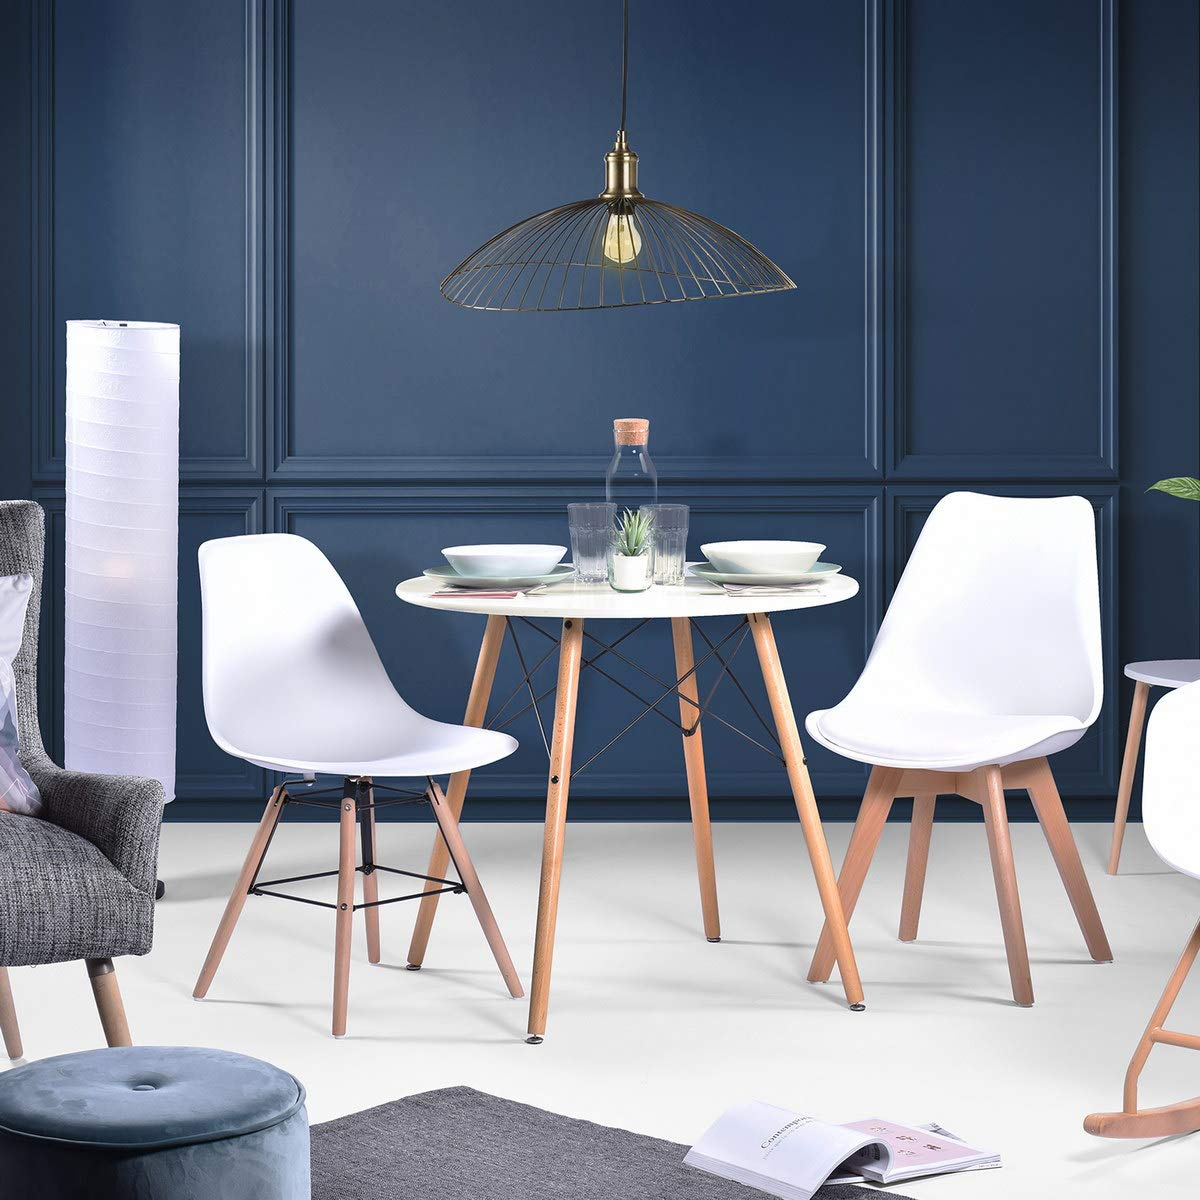 Top 5 Best Round Dining Tables In 2019 Review